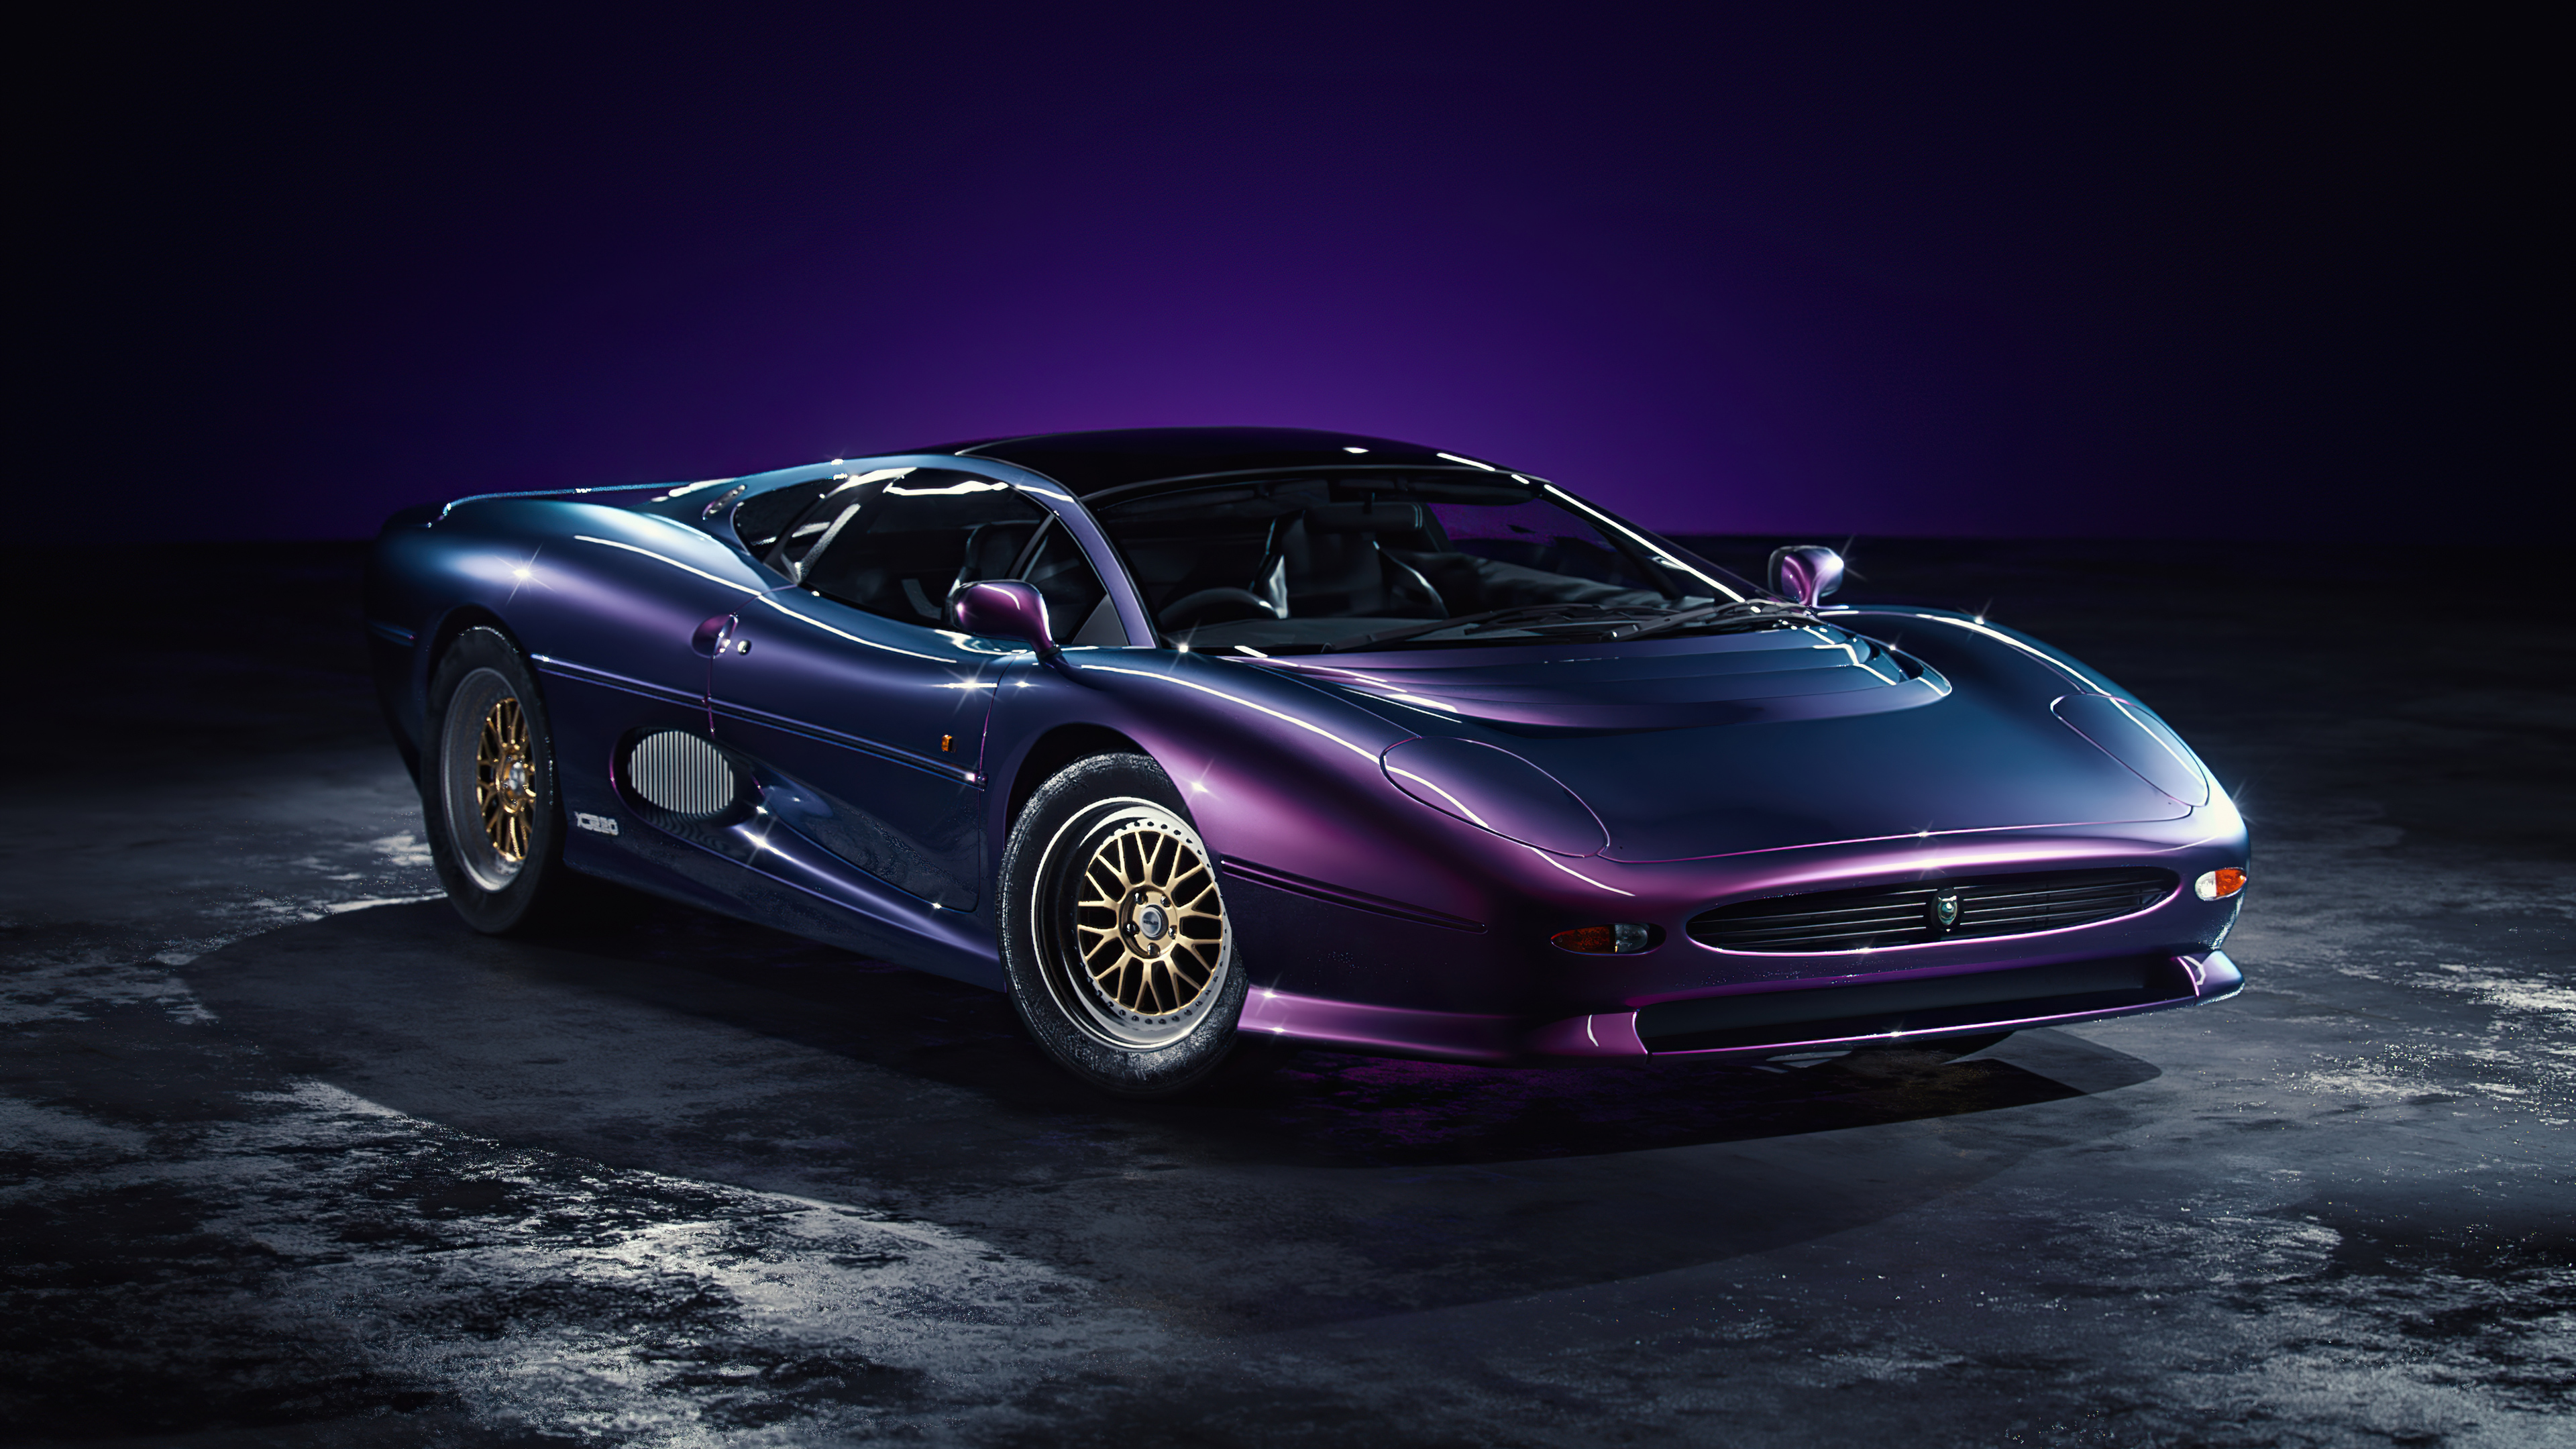 jaguar xj220 purple 4k 1618920903 - Jaguar XJ220 Purple 4k - Jaguar XJ220 Purple 4k wallpapers